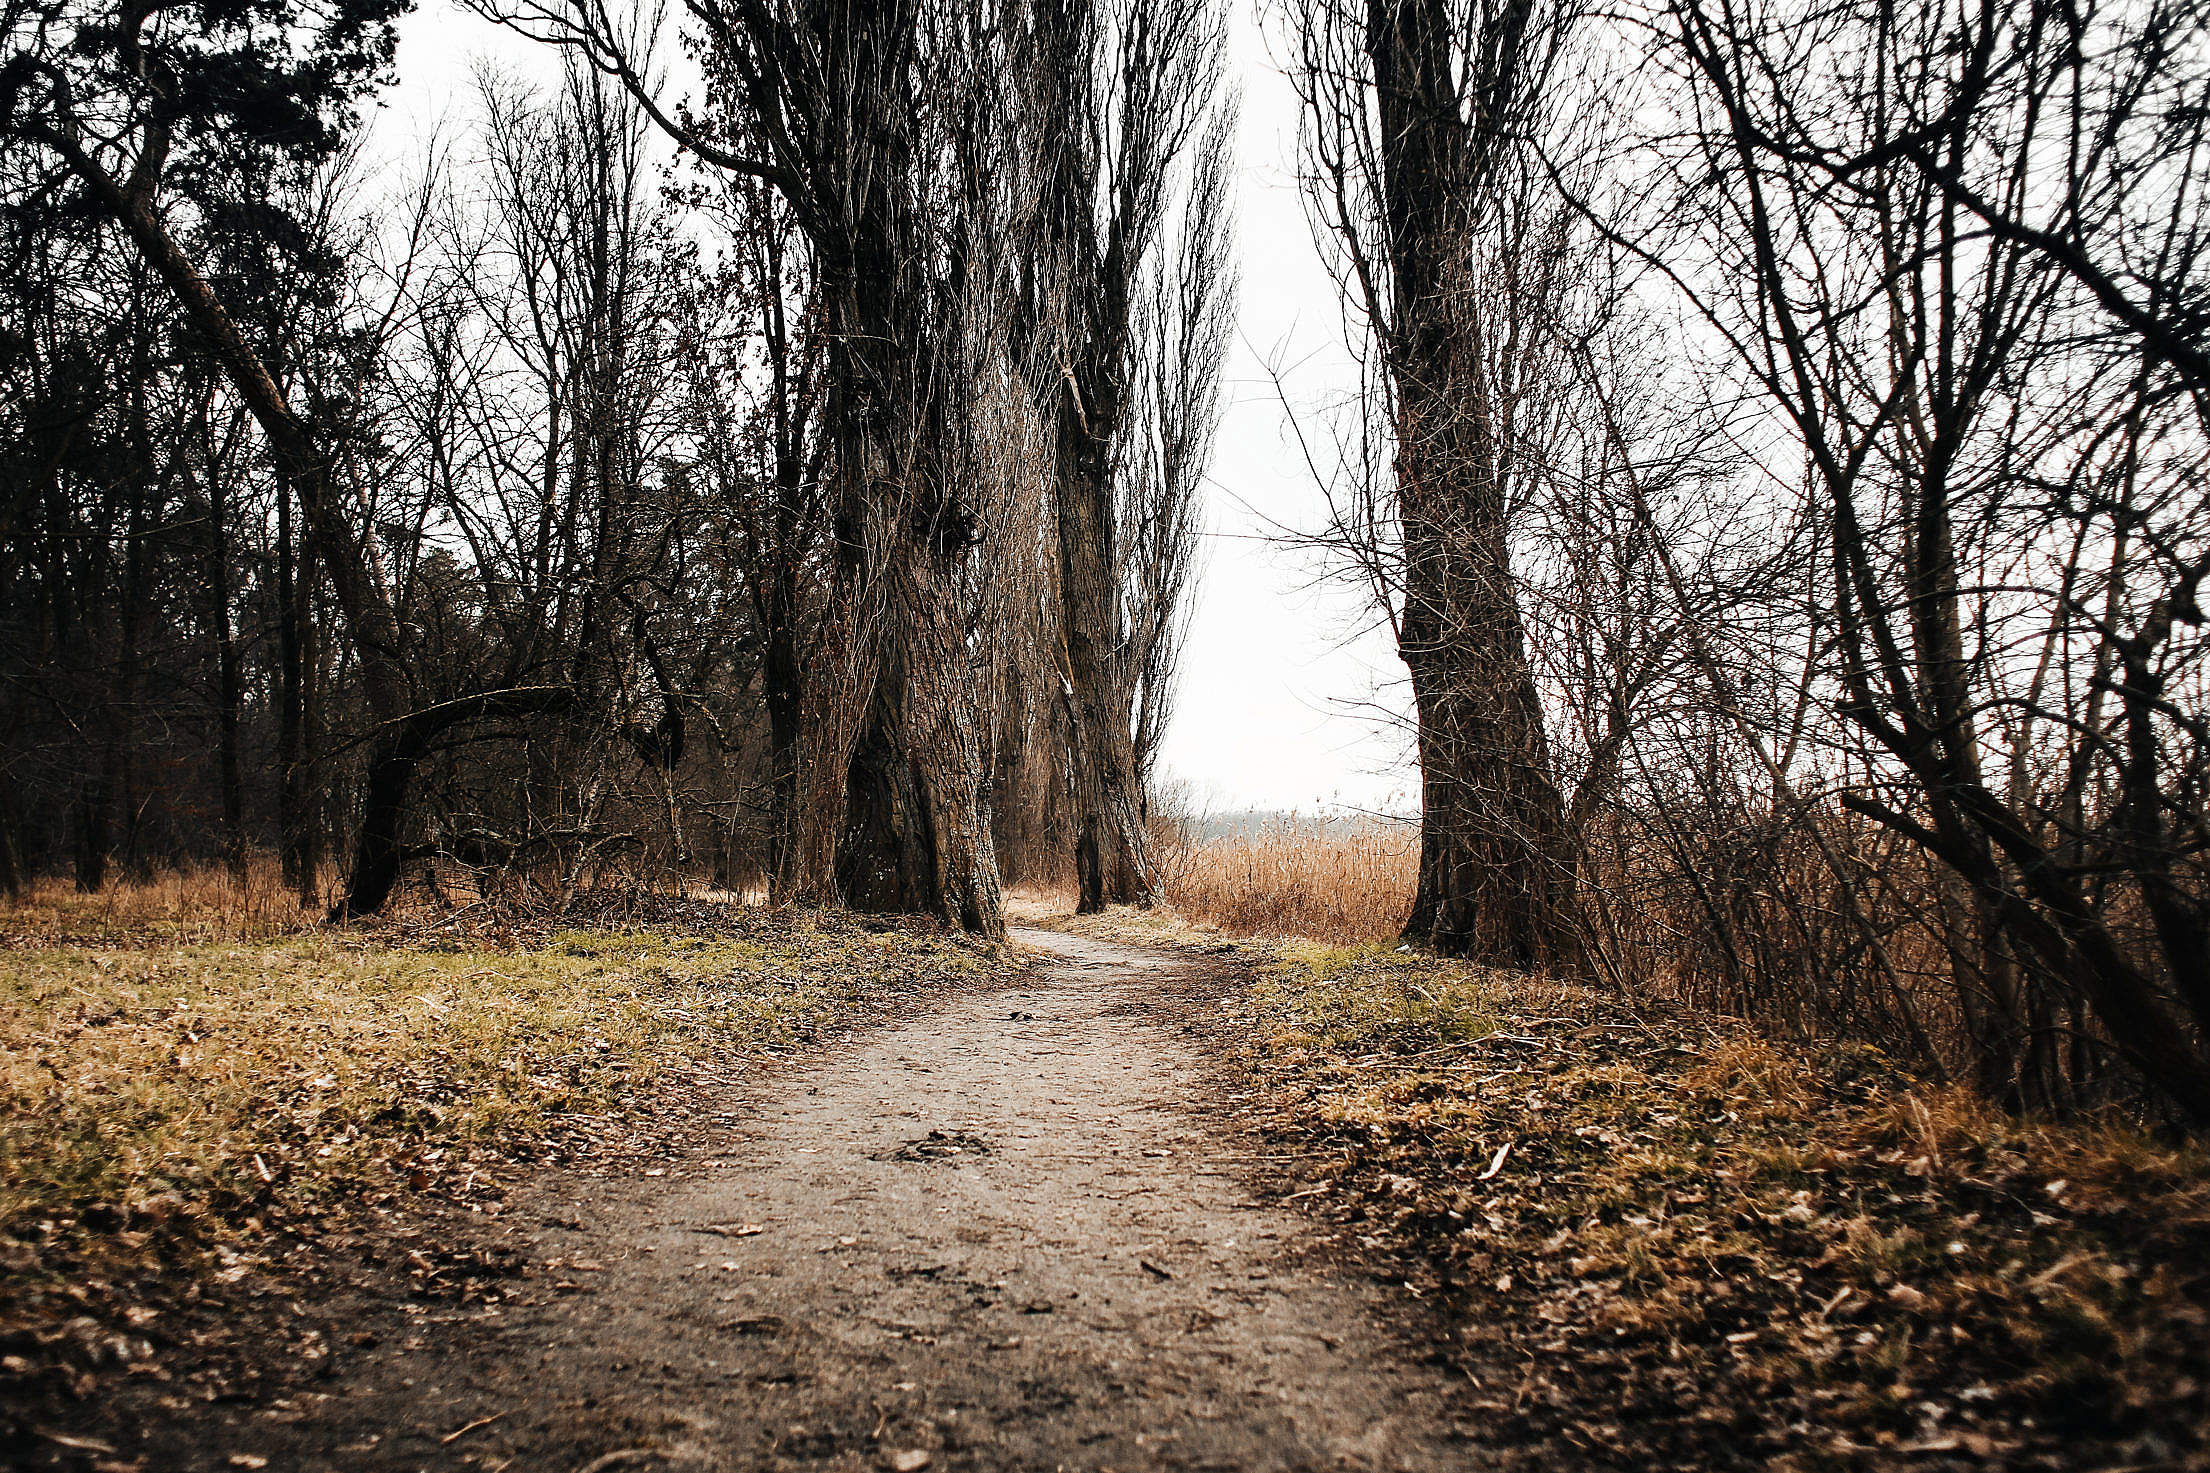 Lakeside Autumn/Winter Path Free Stock Photo